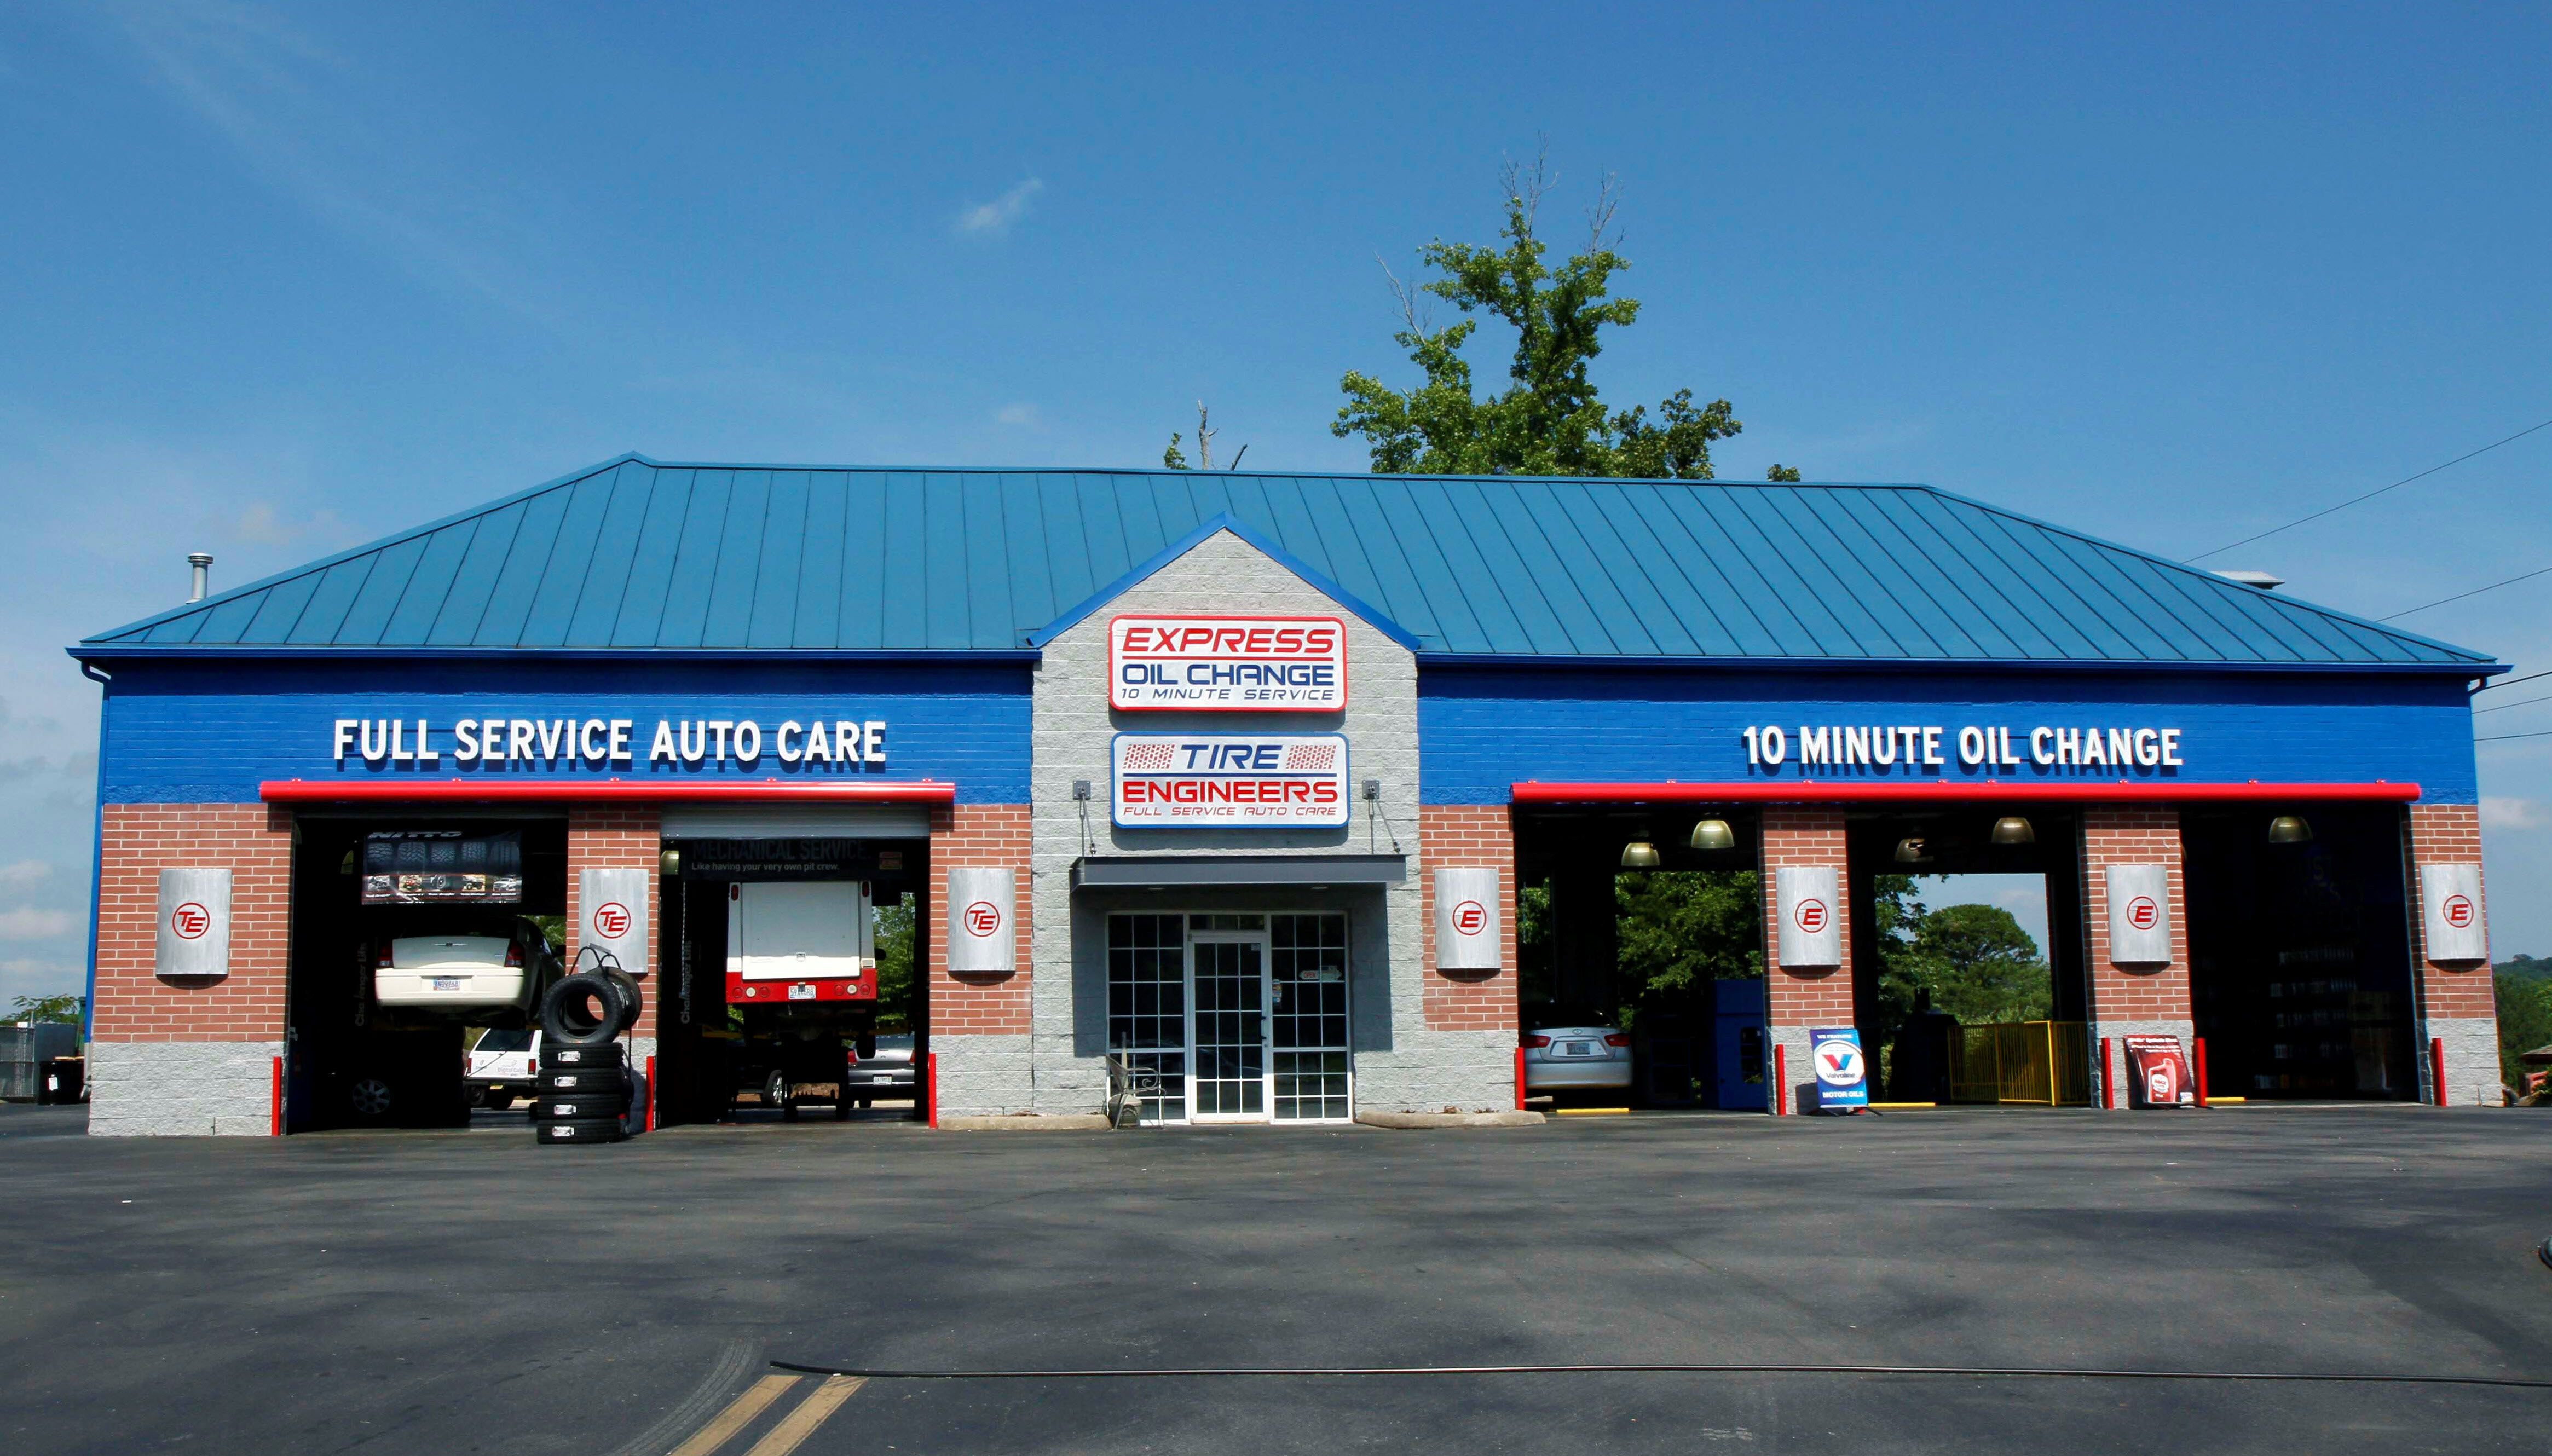 Express Oil Change & Tire Engineers at Leeds, AL store